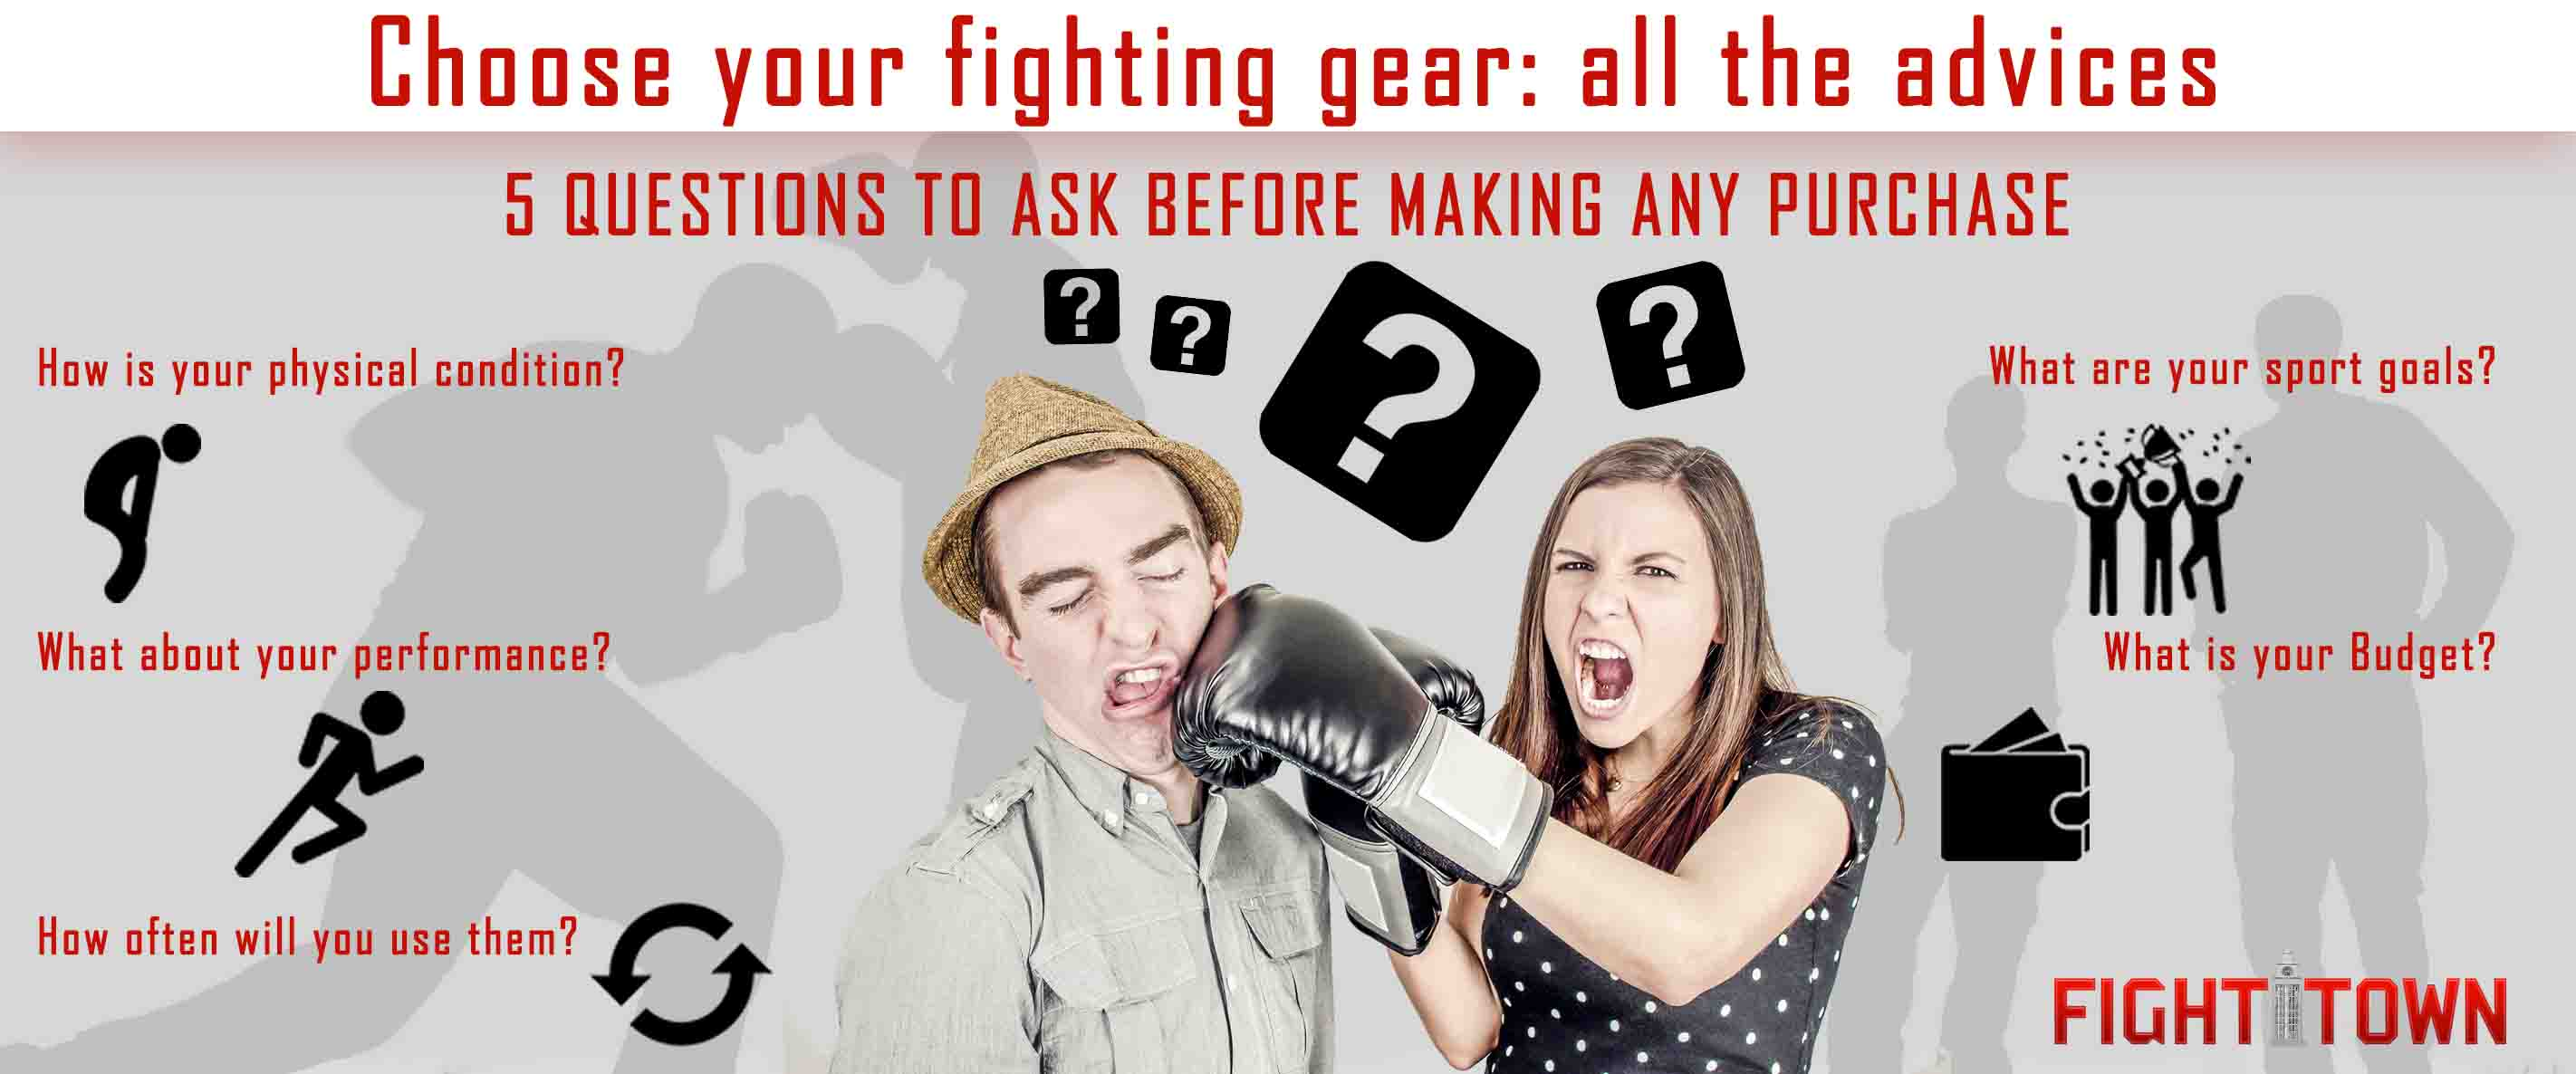 Choose your fighting gear: all the advice